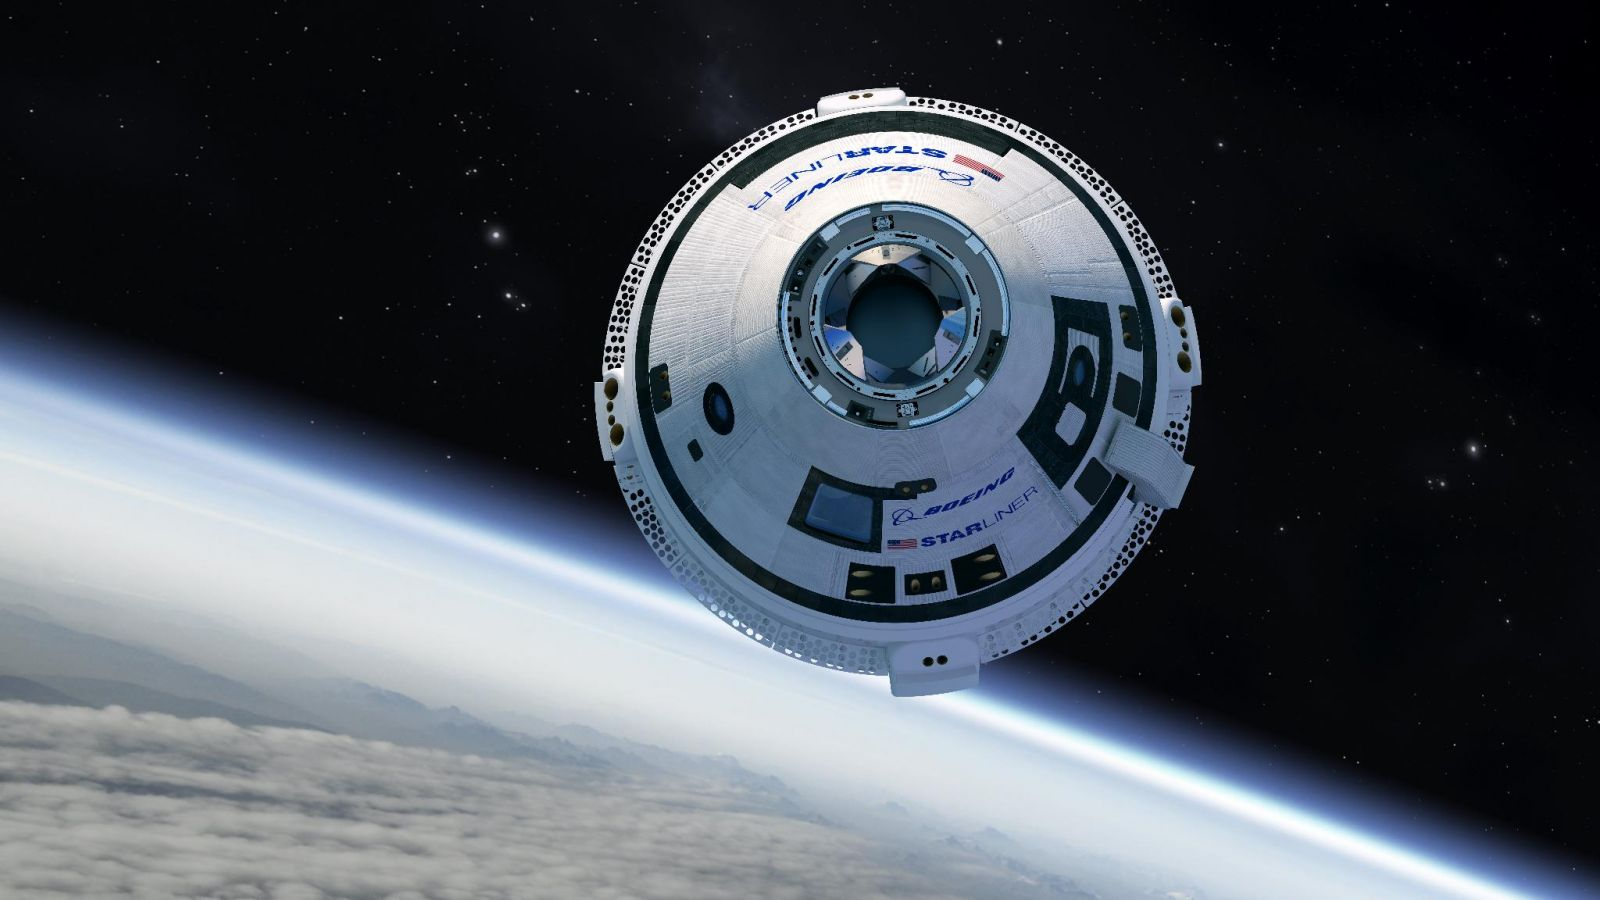 United Launch Alliance sent the first of Boeing's Starliner spacecraft on its way to the International Space Station earlier today. Image Credit: Boeing / NASA